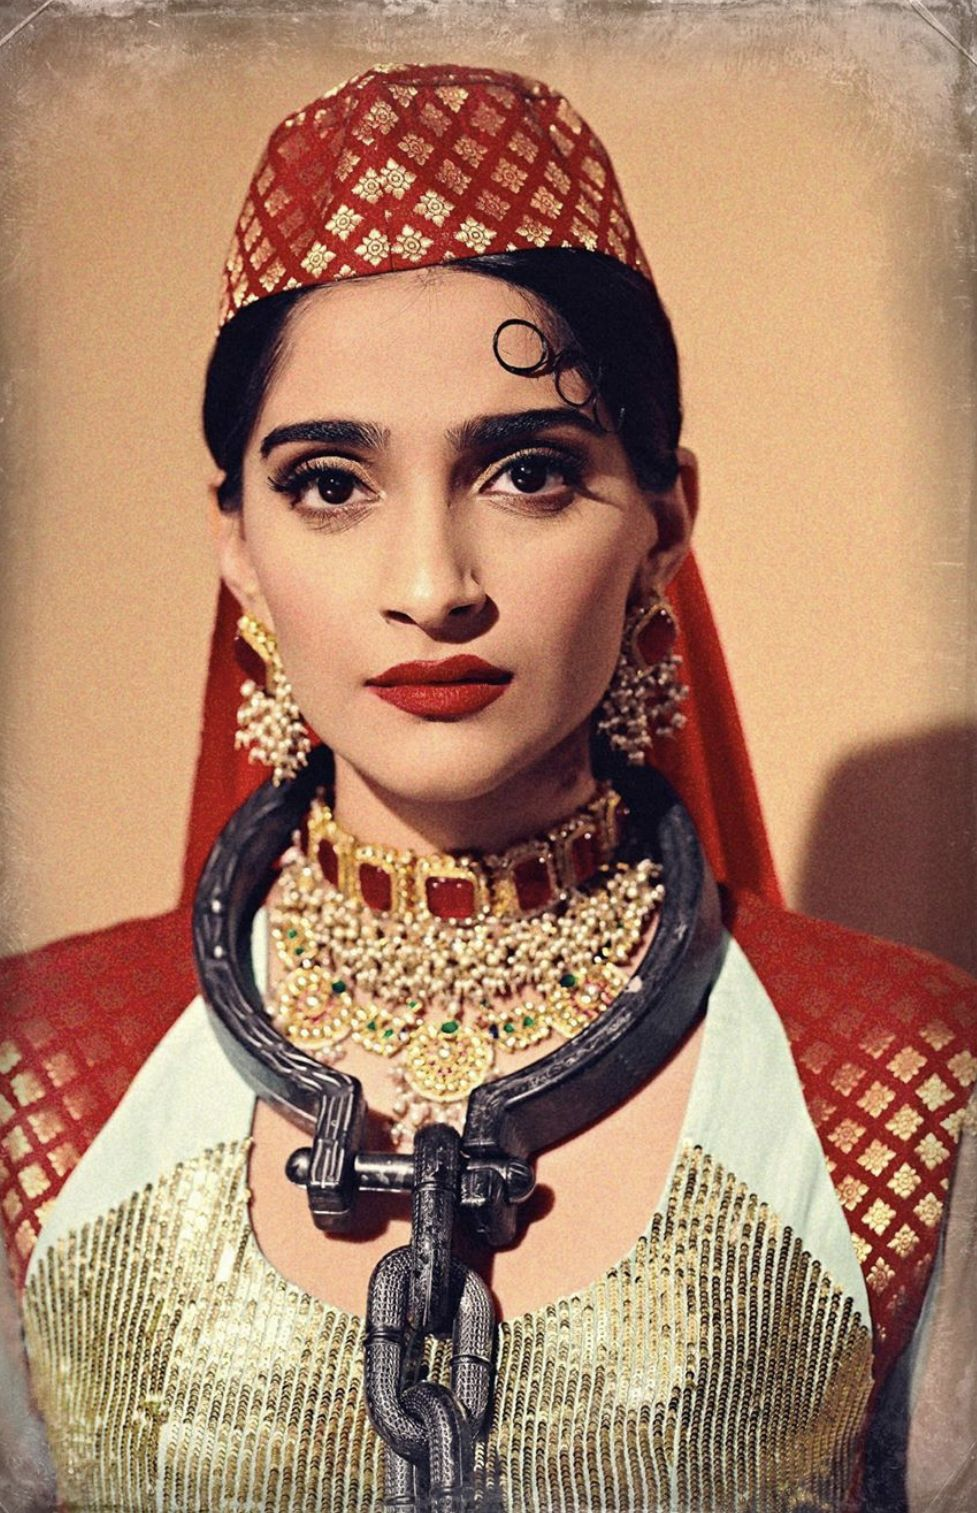 Pin by OneLoveMySelf on sonam kapoor.. Sonam kapoor